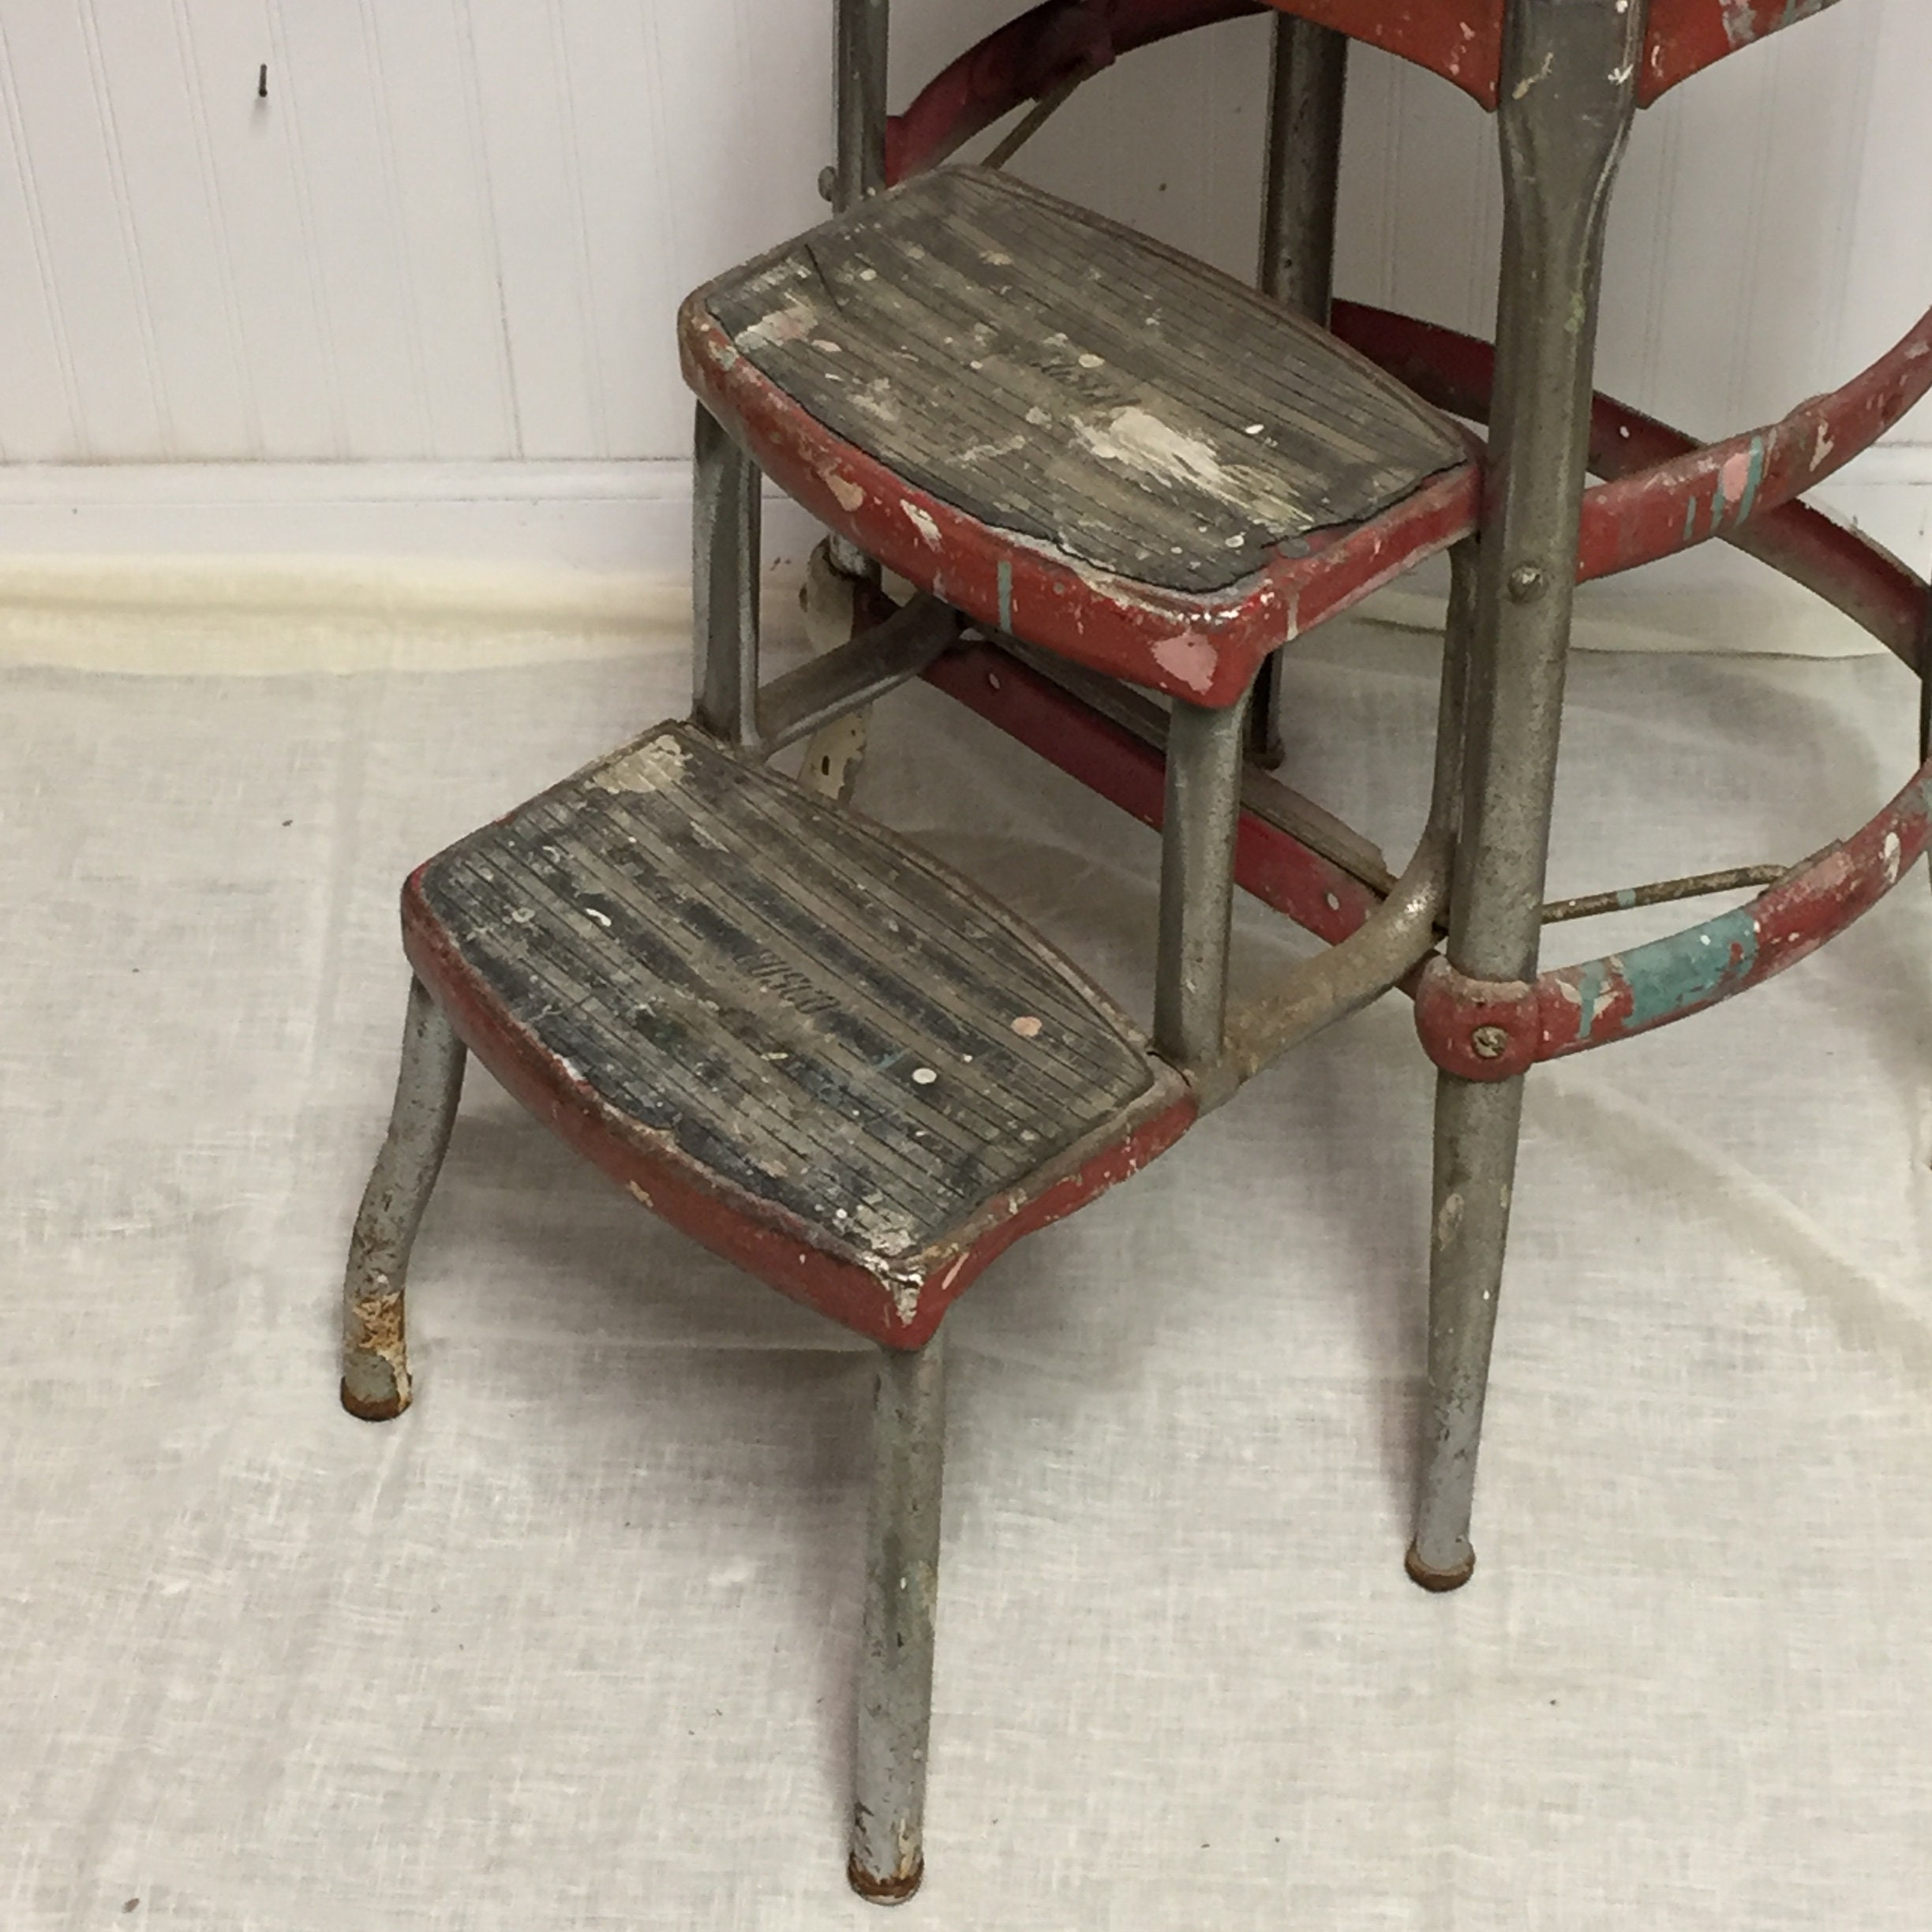 Enjoyable Shabby Red 1950S Cosco Metal Step Stool Chair With Pull Out Ncnpc Chair Design For Home Ncnpcorg